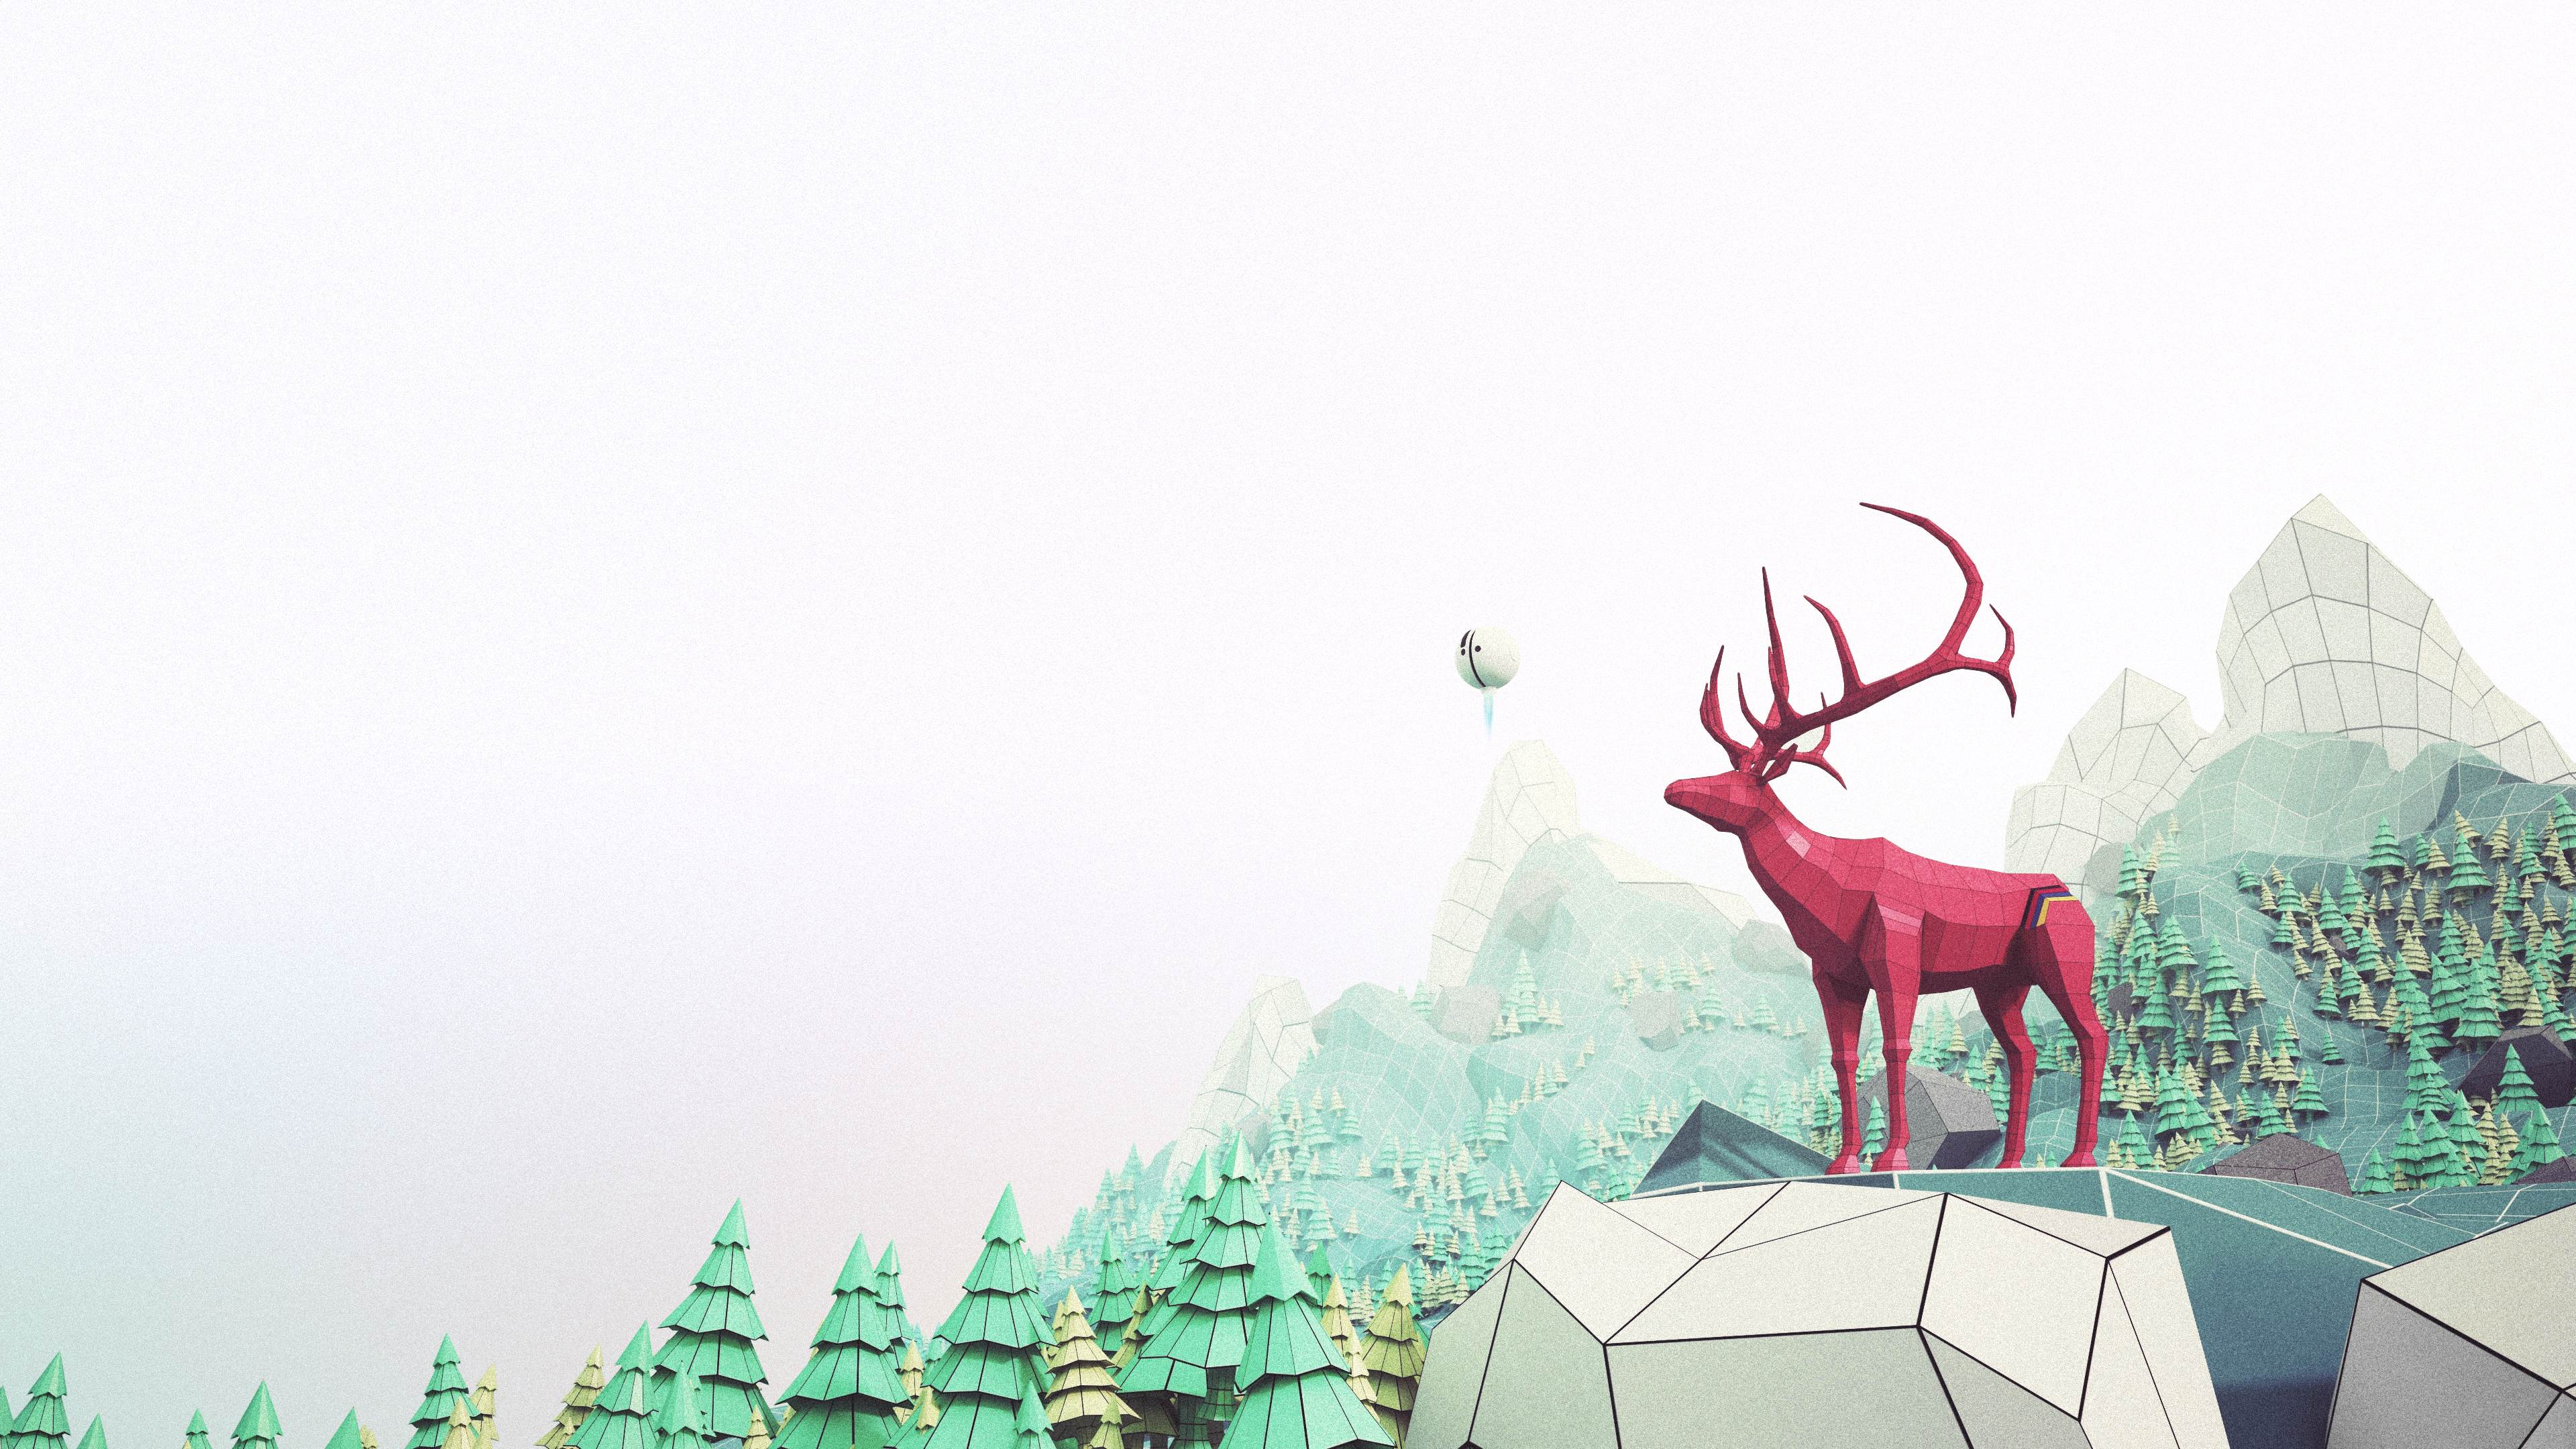 red elk low poly illustration in 3D not photorealistic